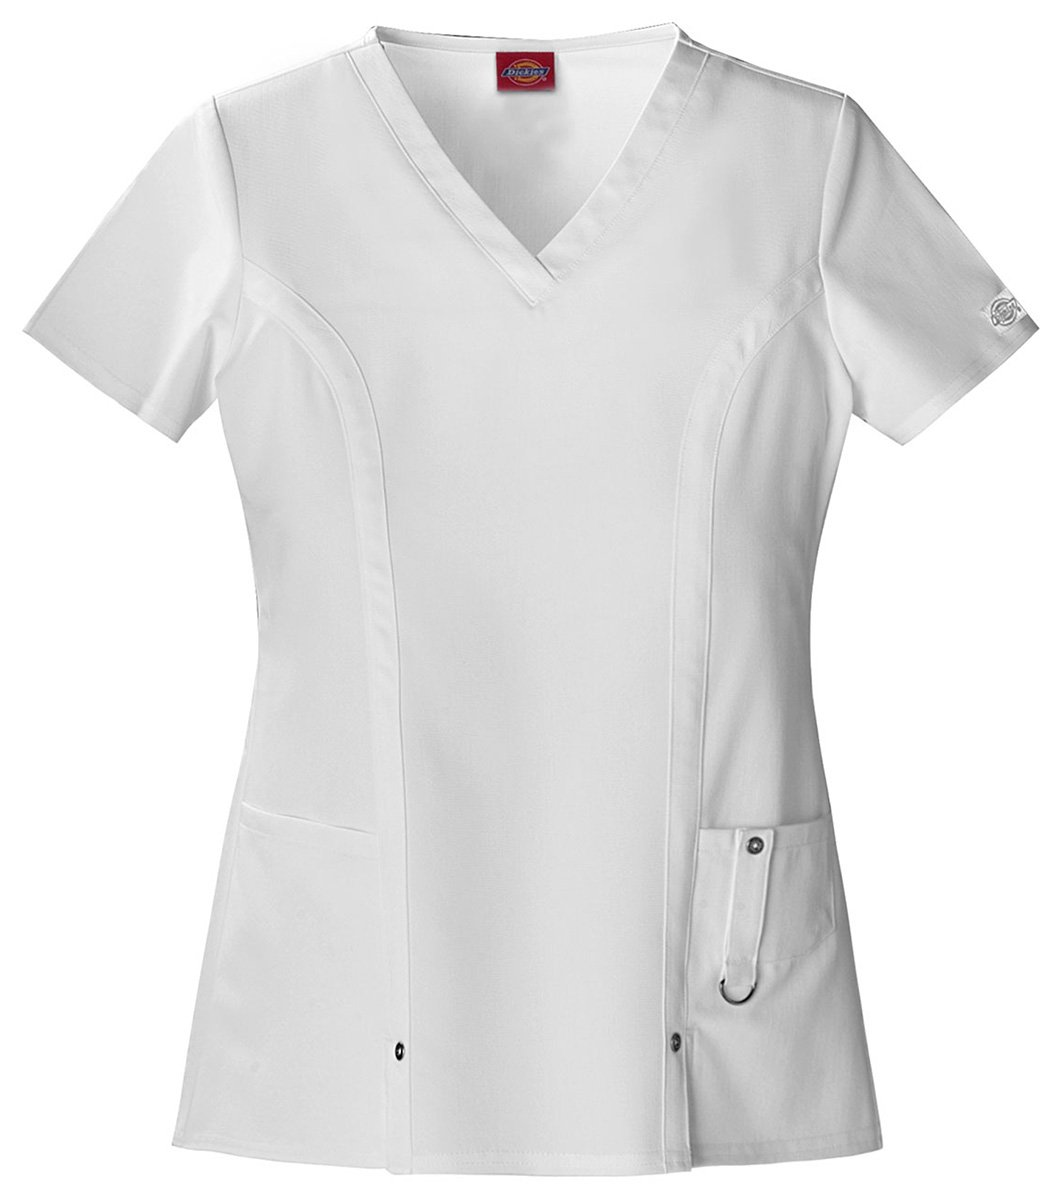 Dickies Women's Classic V-Neck Top_White_XXX-Large,82851